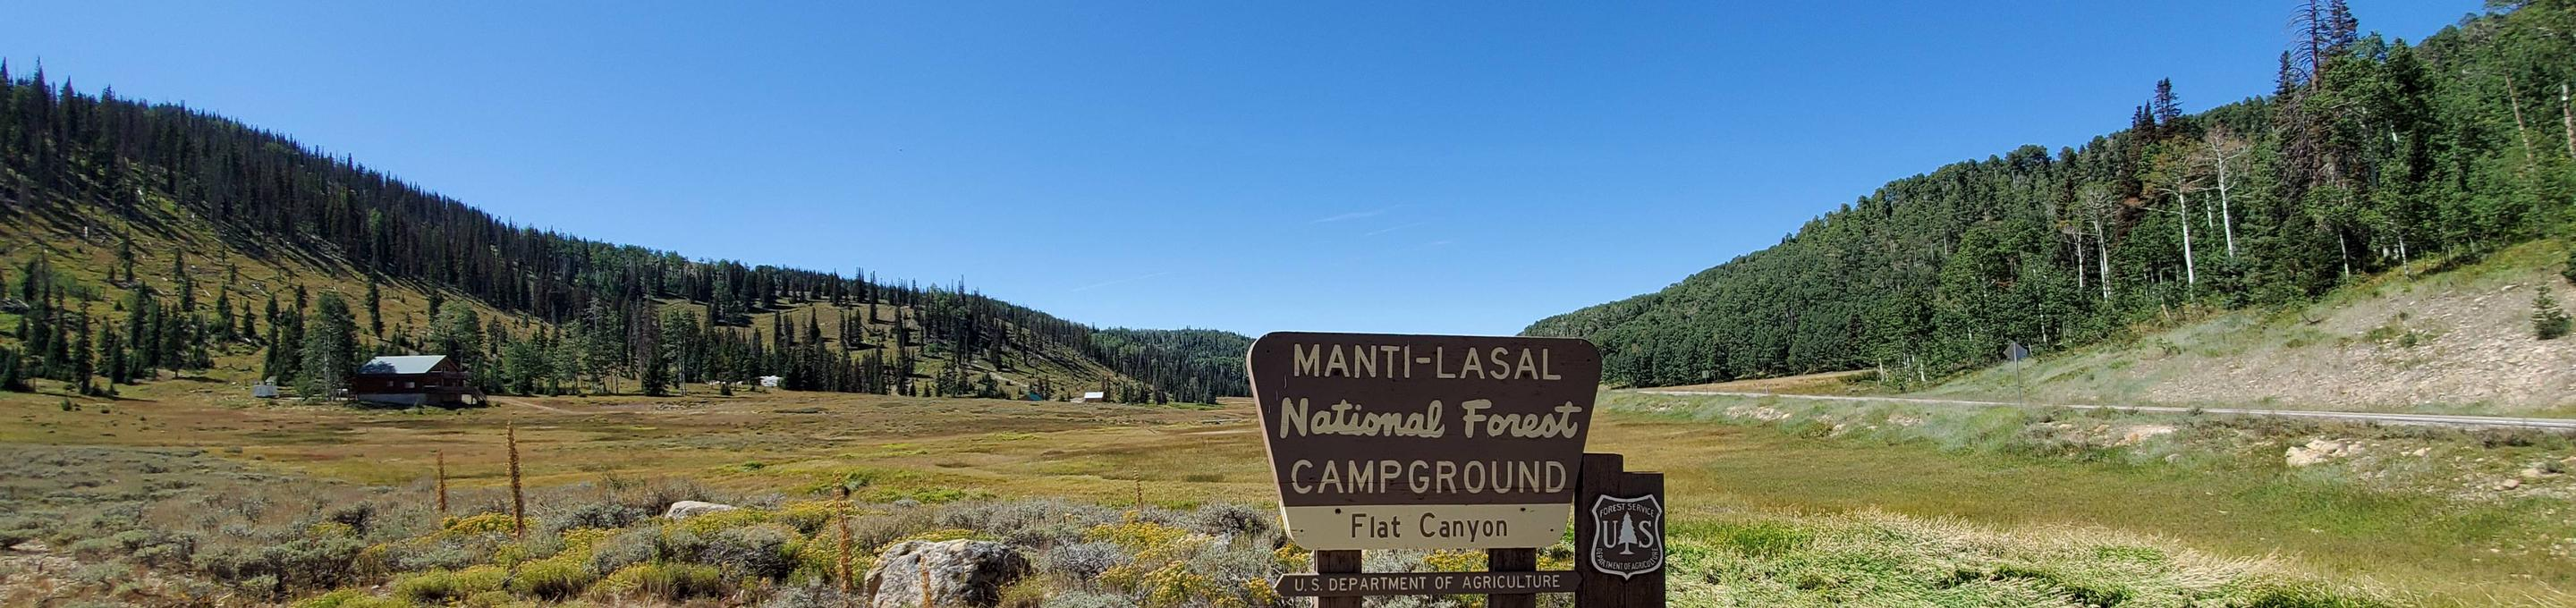 Flat Canyon Campground